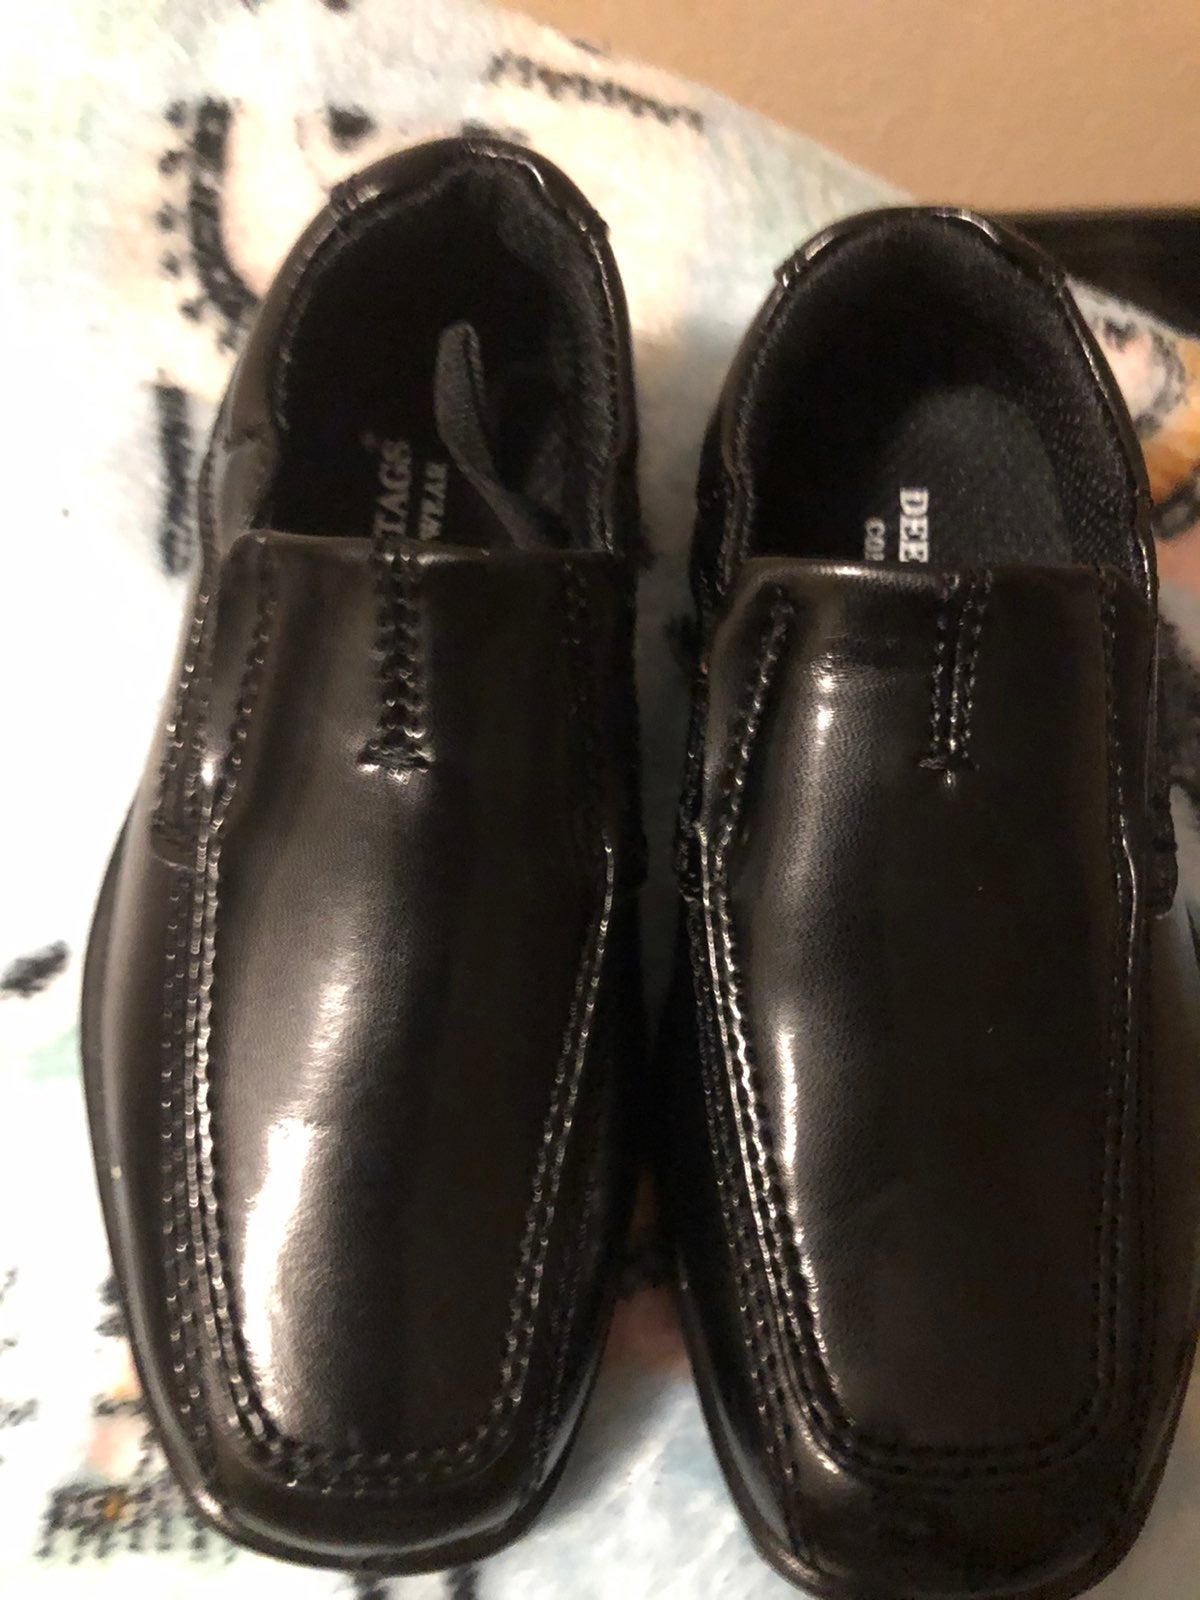 Toddler Size 7 Loafers/Dress Shoes